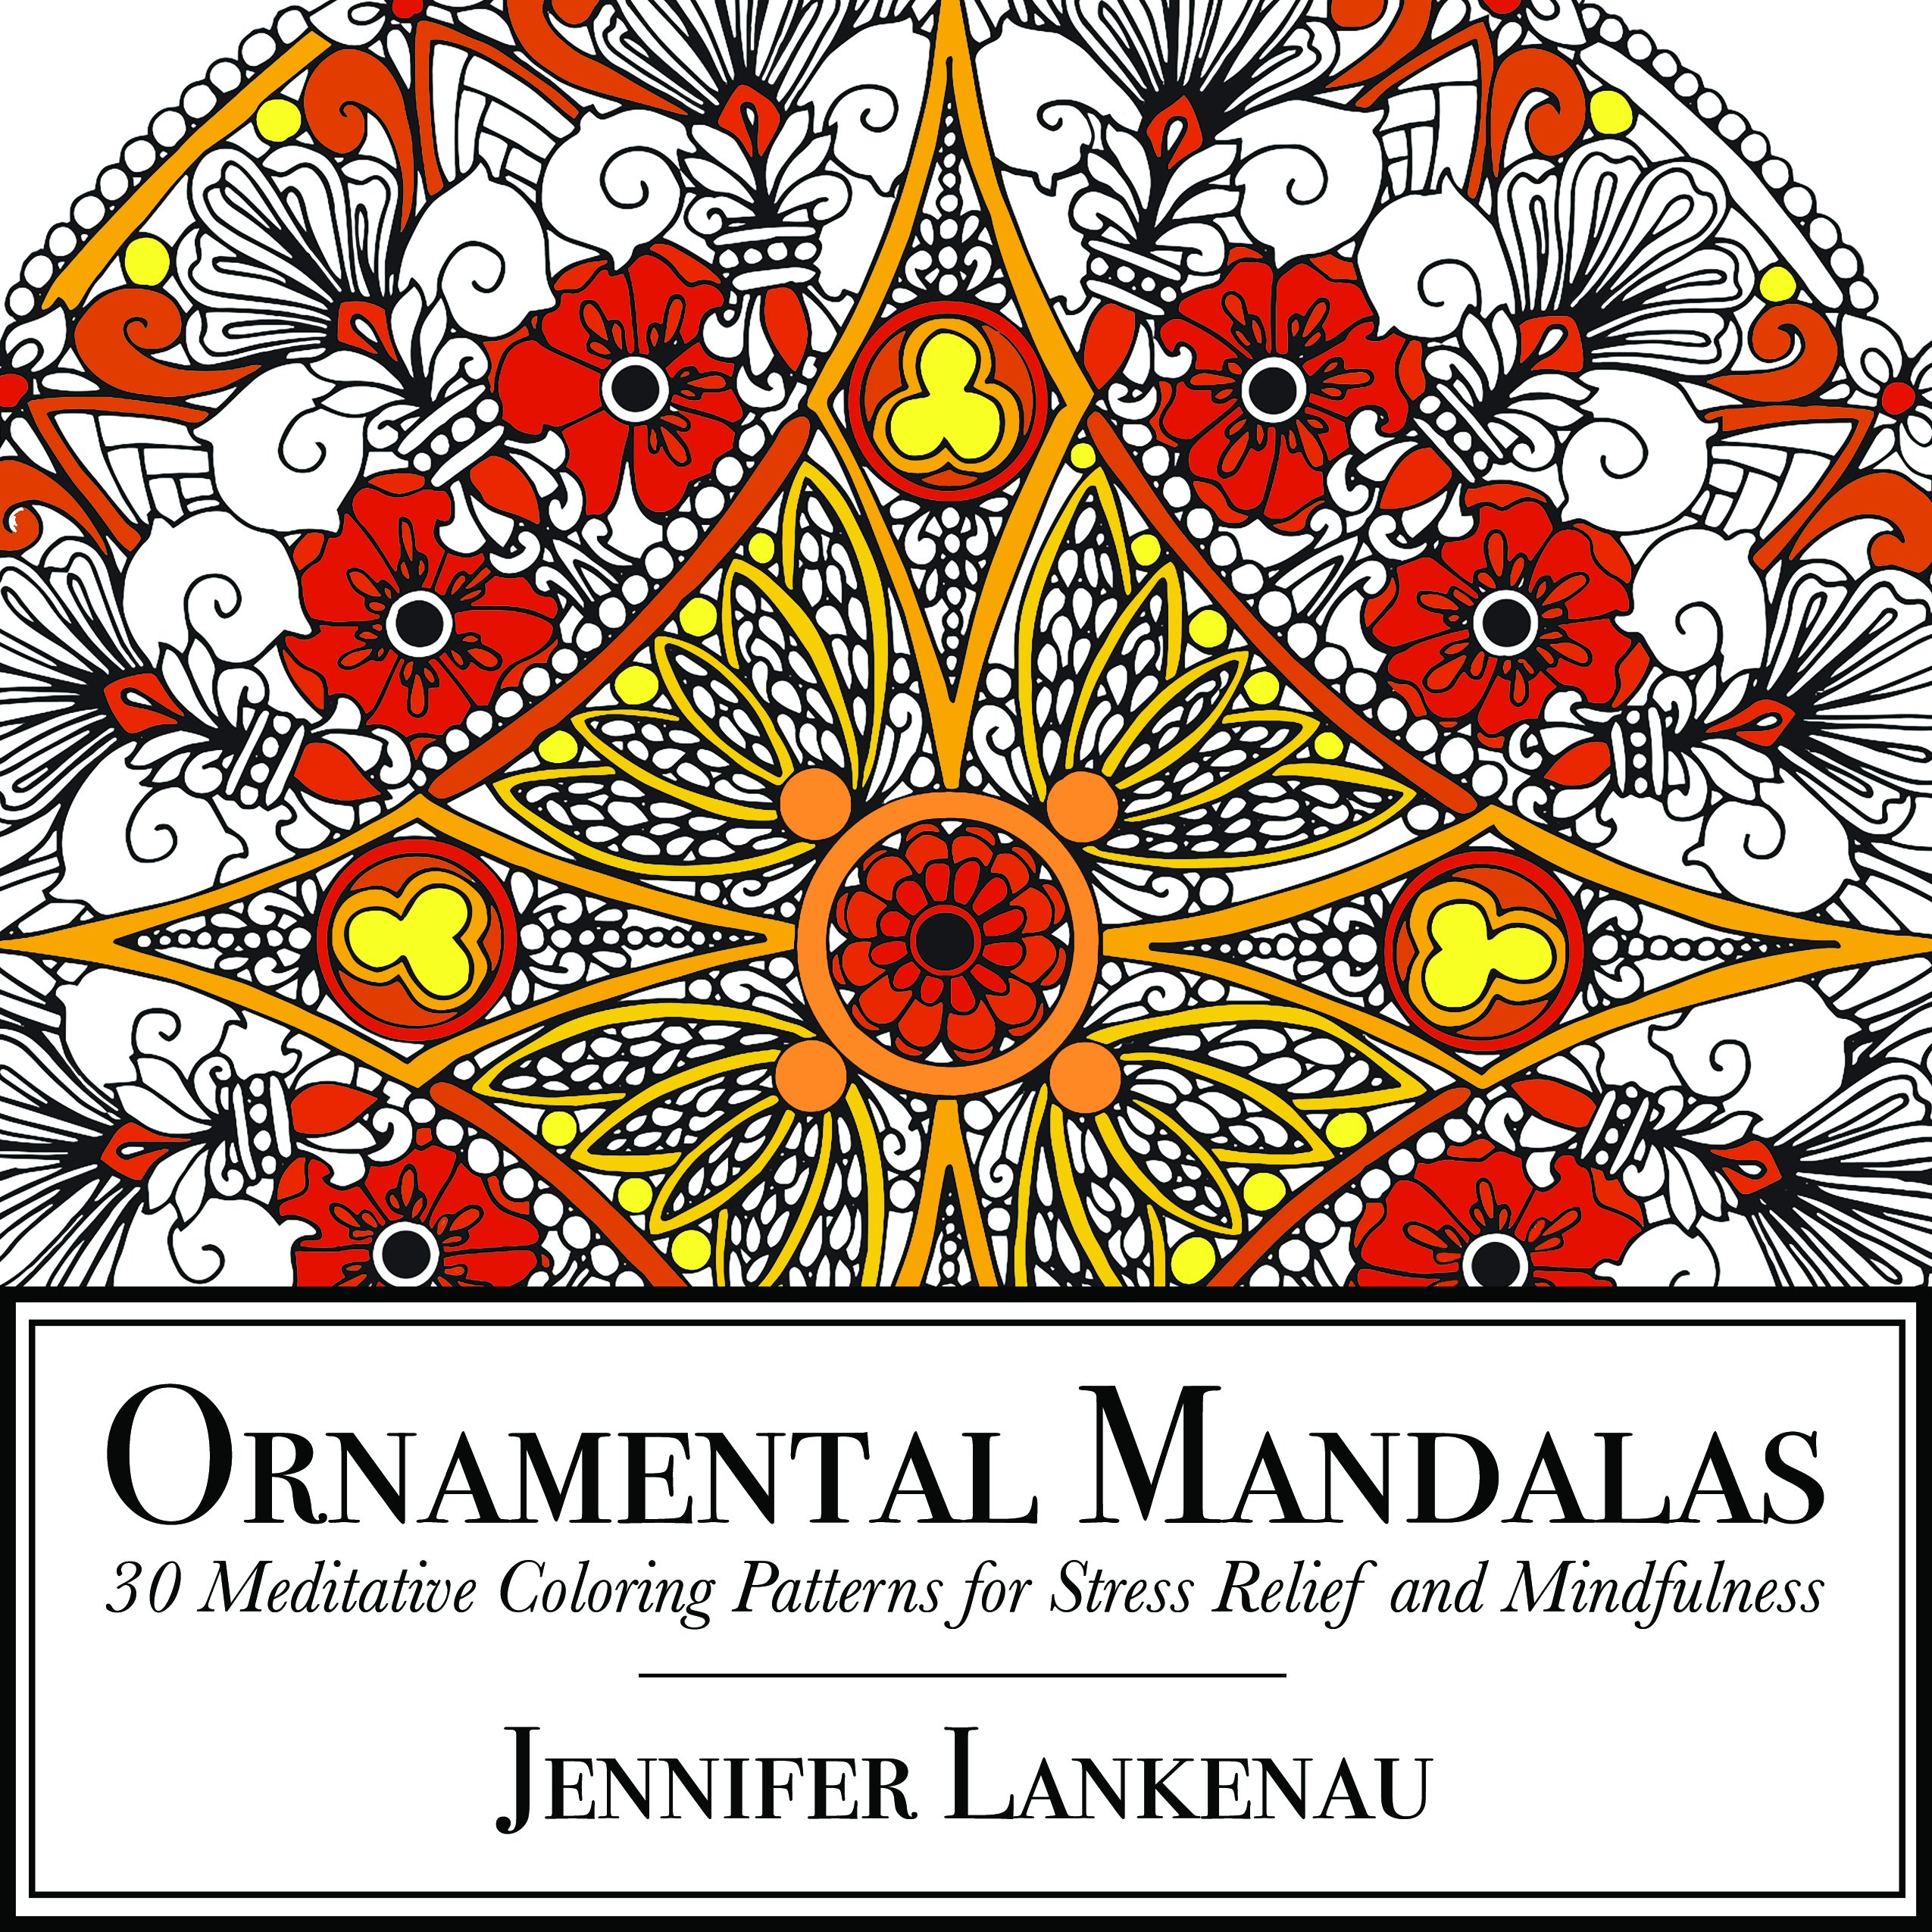 Ornamental Mandalas: 30 Meditative Coloring Patterns for Stress Relief and Mindfulness PDF ePub fb2 ebook